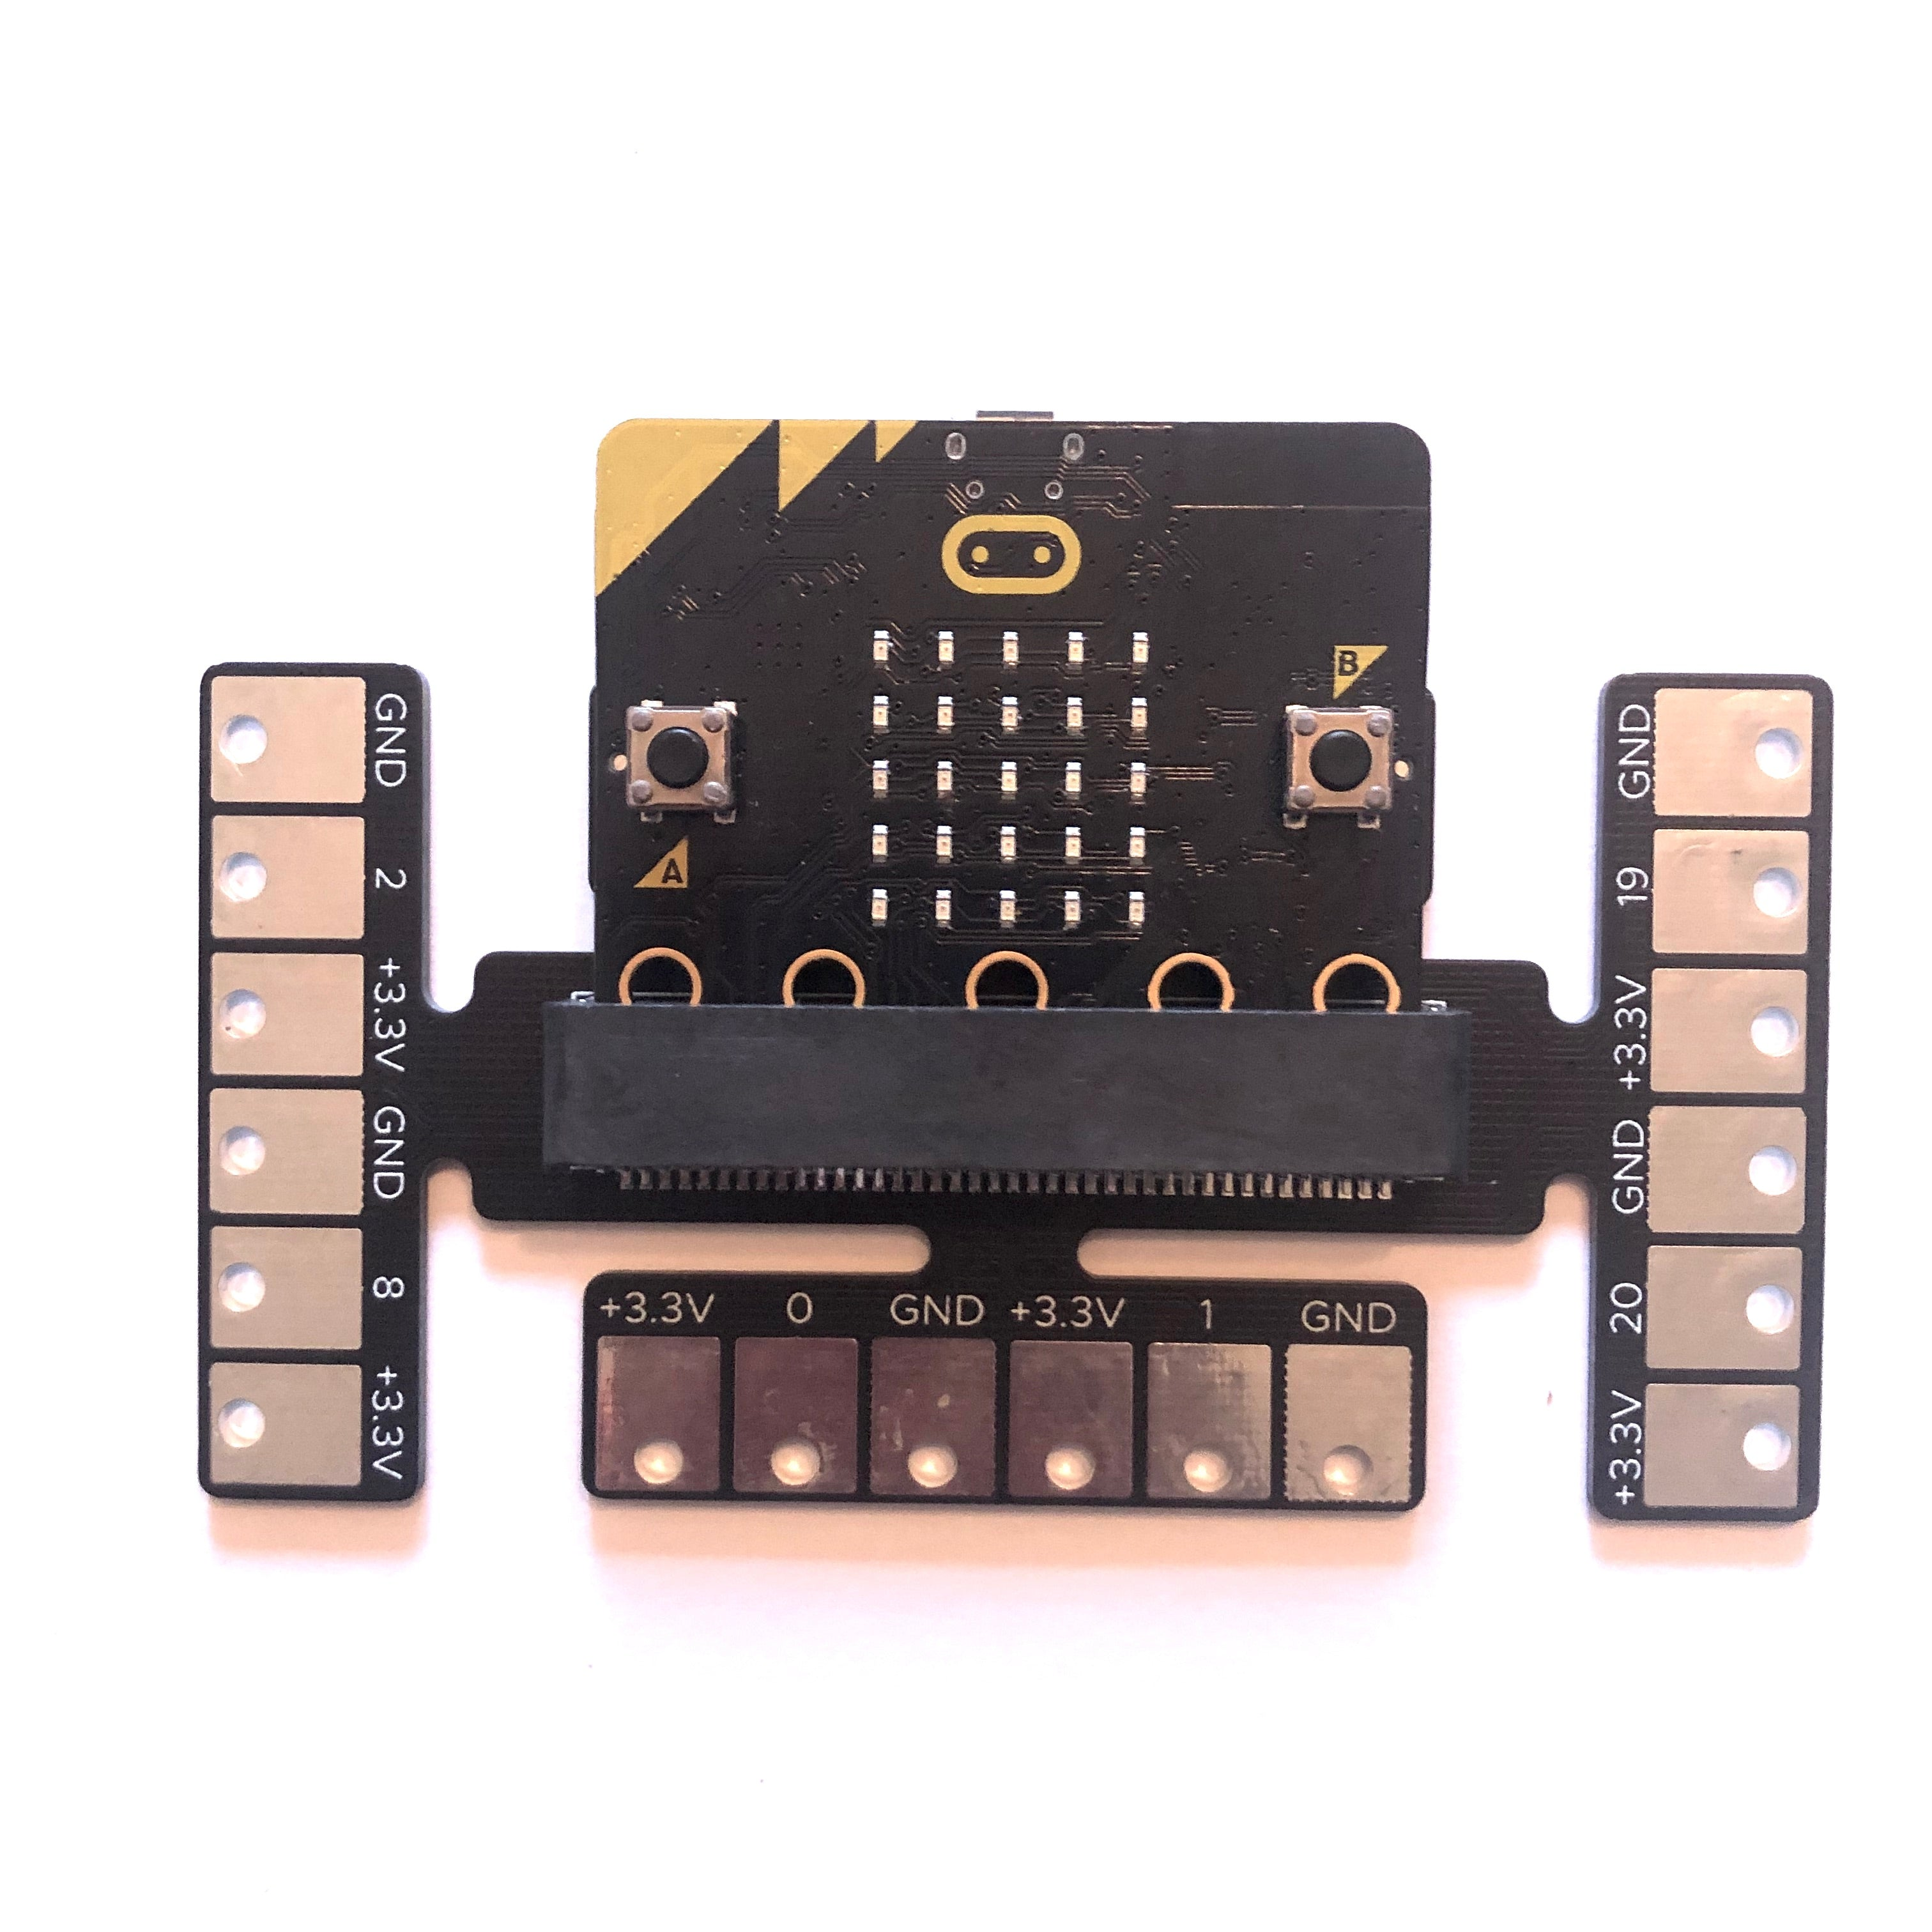 Launchpad for Micro:bit and CLUE by Adafruit